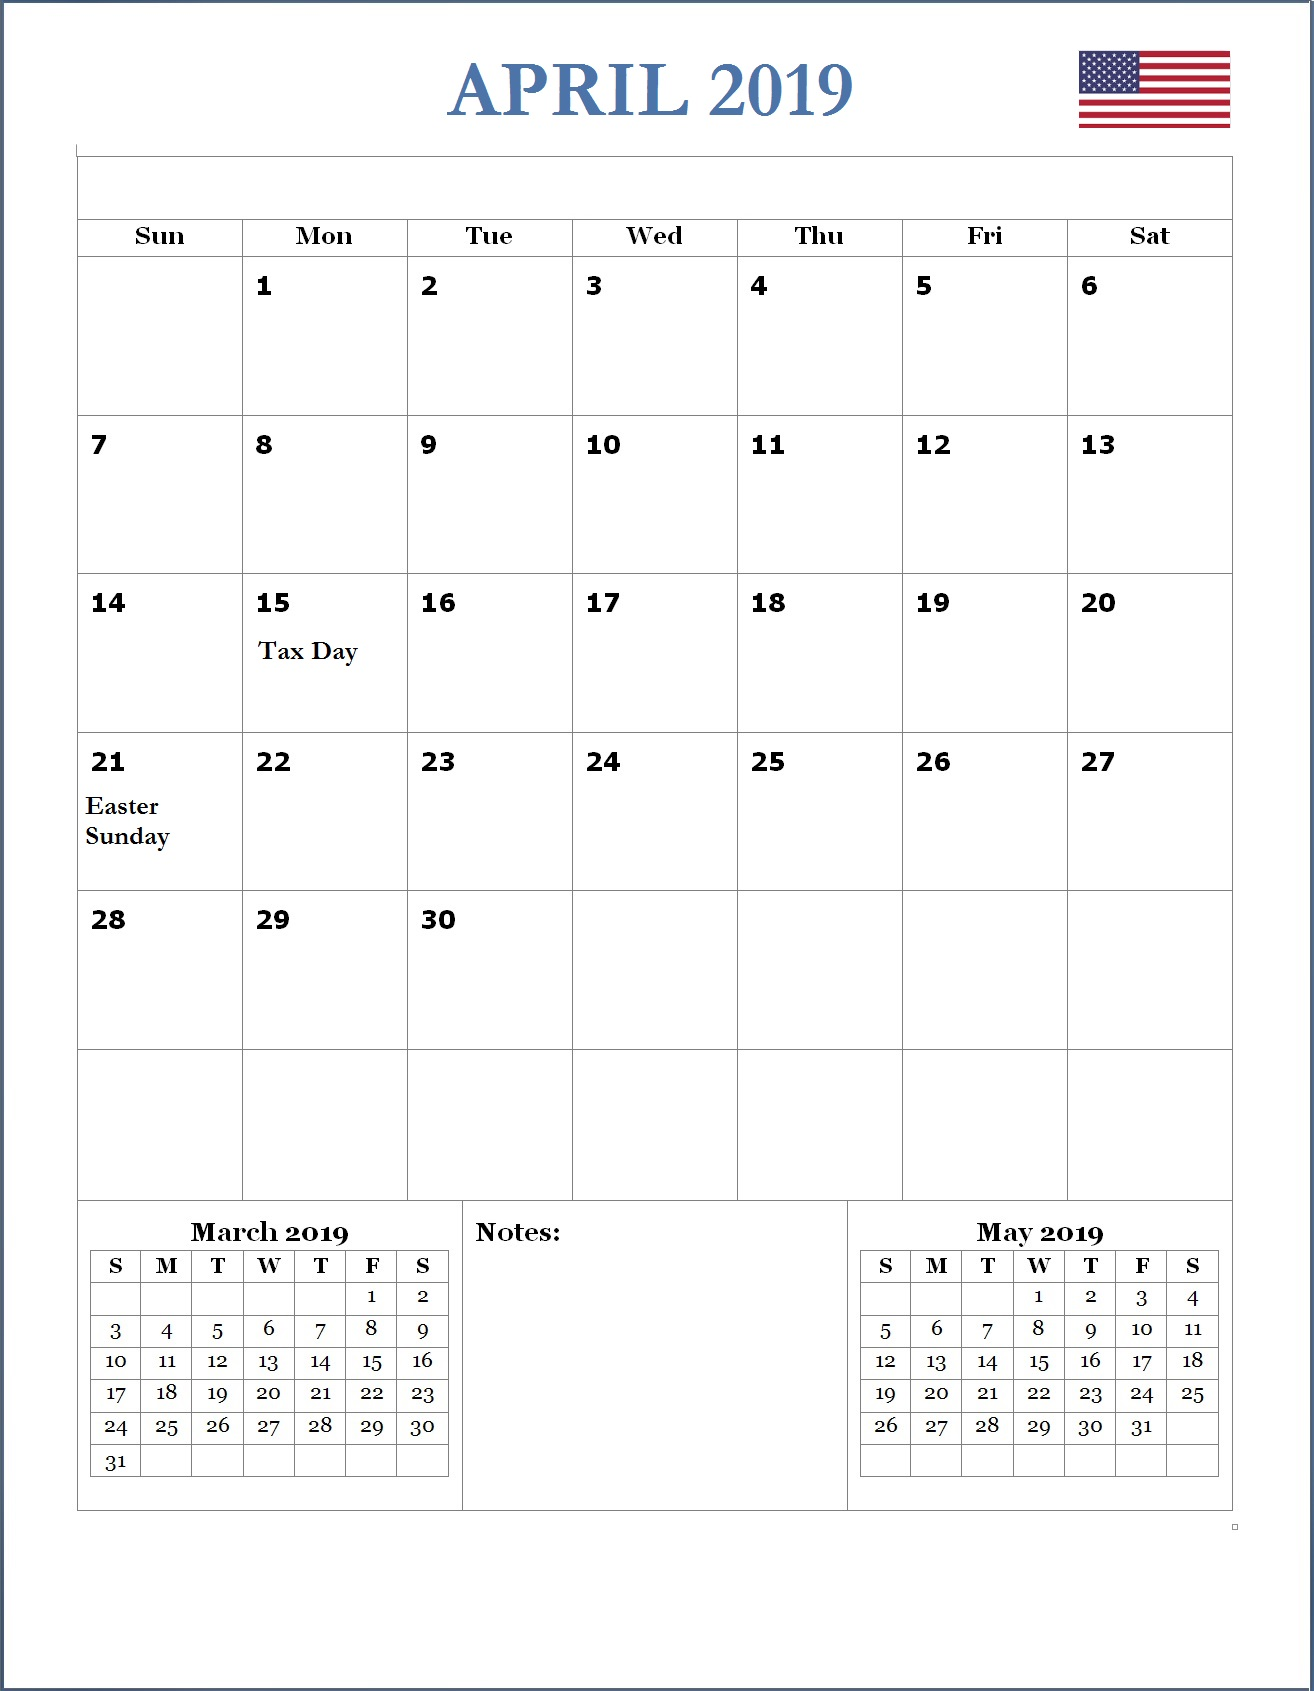 2019 April USA Holidays Calendar